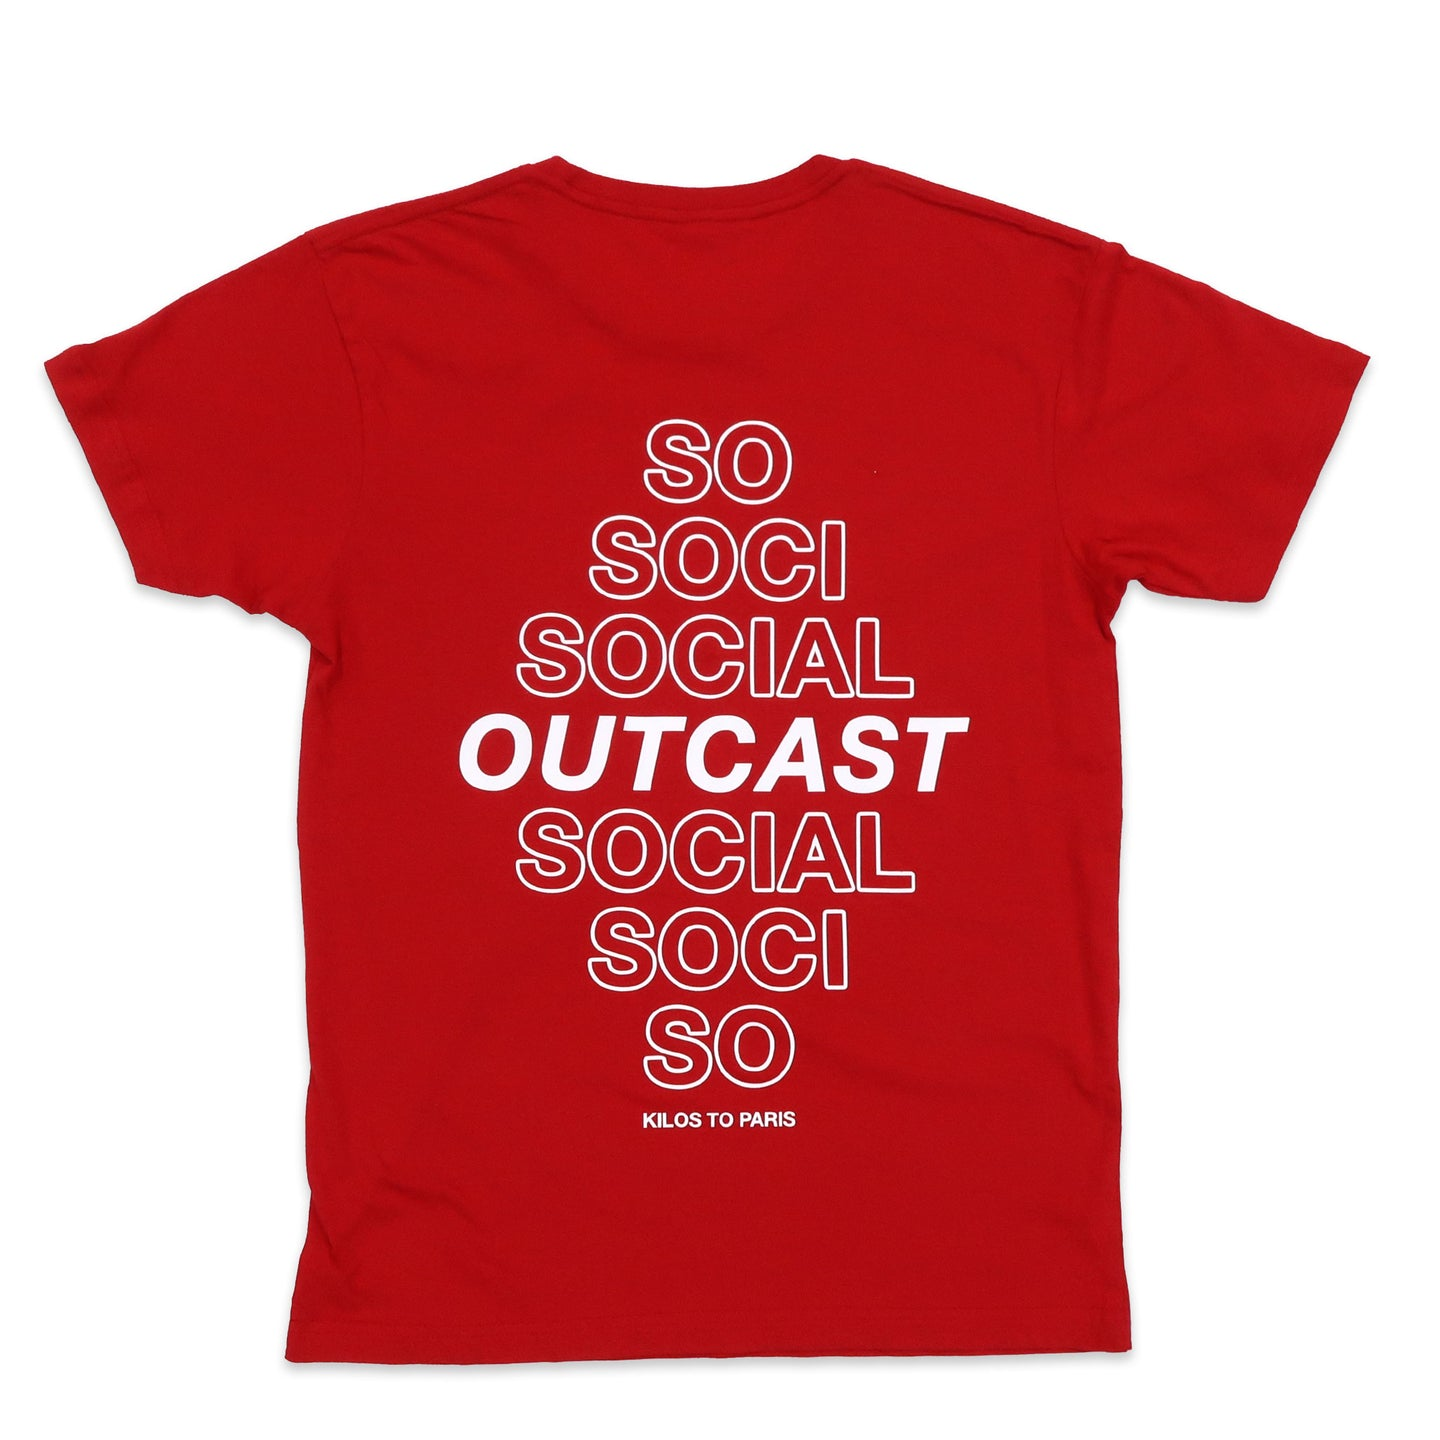 Social Outcast Tee in Red and White